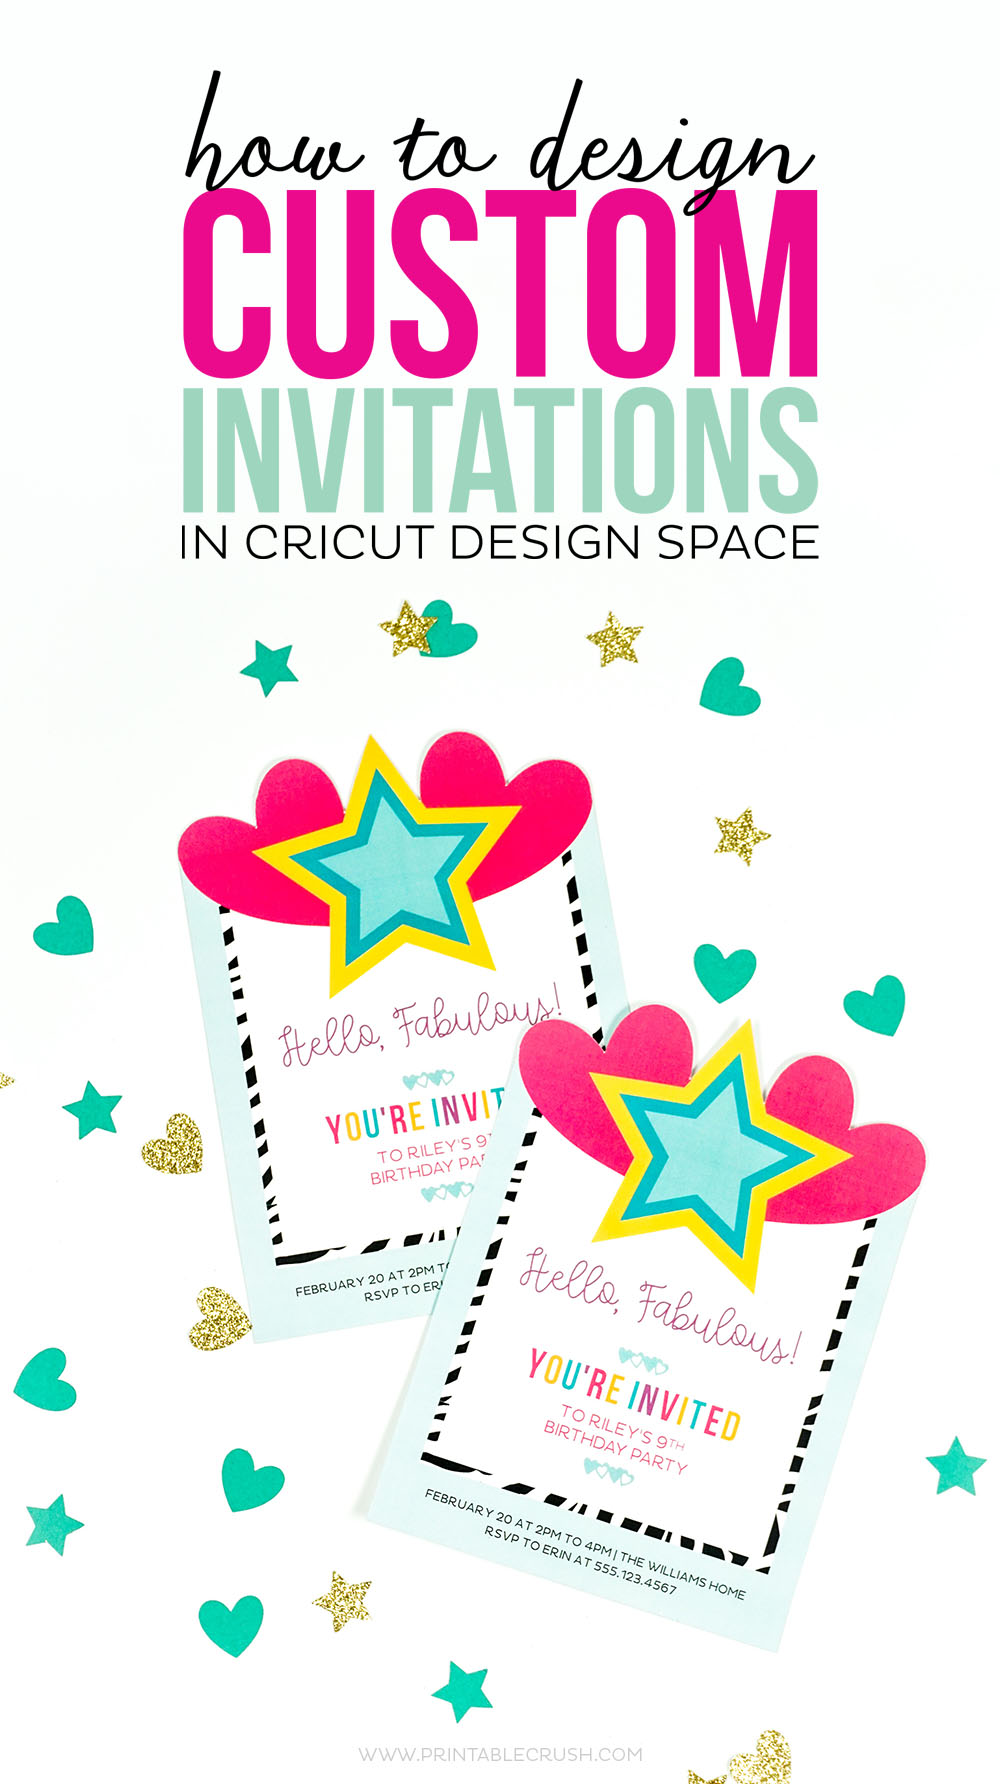 Invitation Design Design Beautiful Custom Invitations